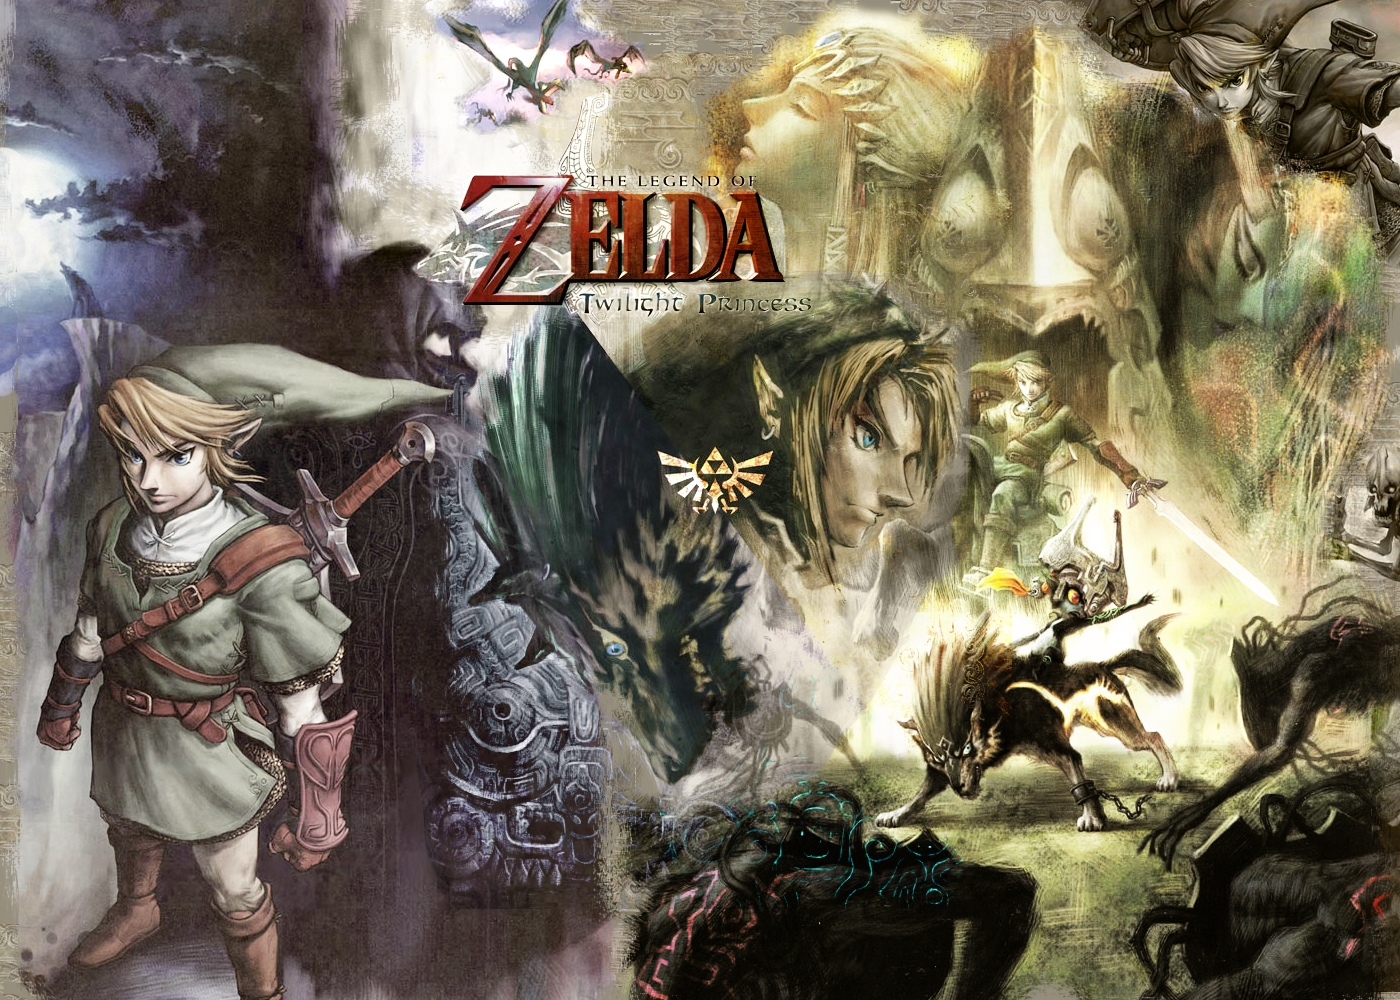 Twilight Princess Wallpapers   The Legend of Zelda Twilight Princess 1400x1000